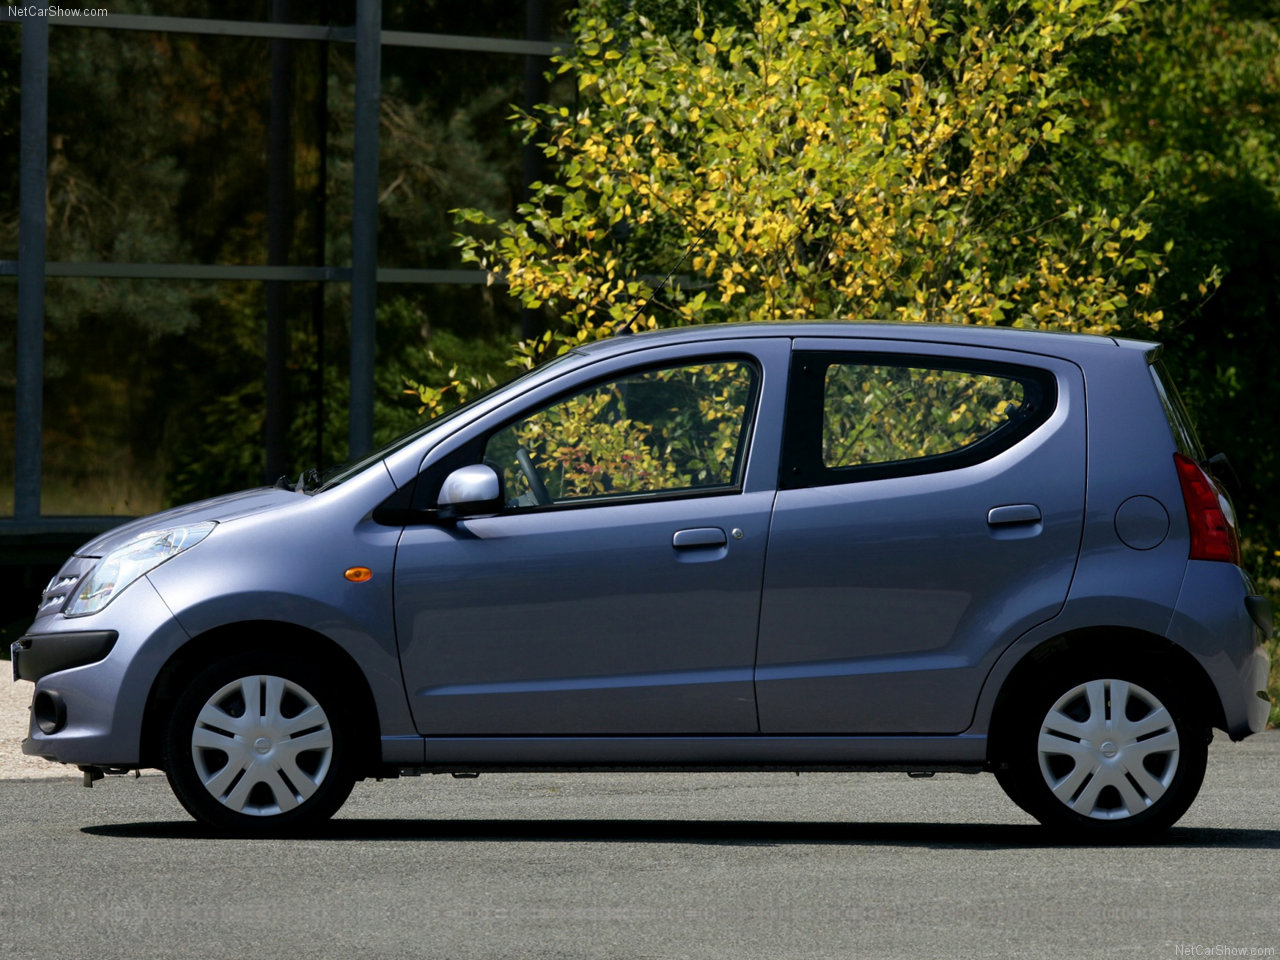 2009 Nissan Pixo Hatchback 5-door